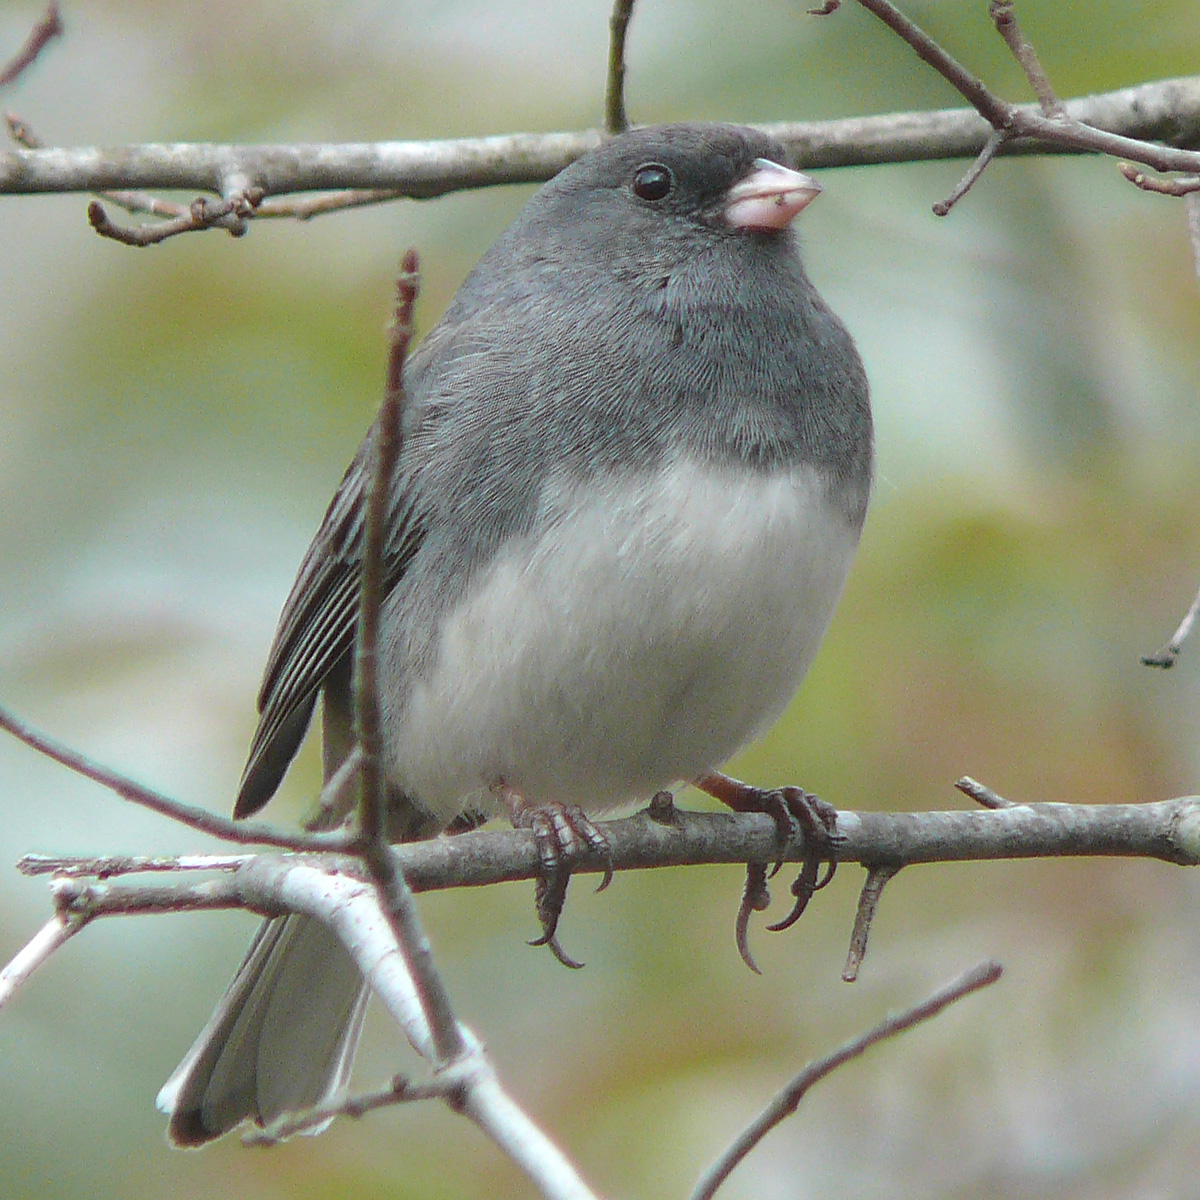 Wild Birds Unlimited: Small gray bird with white belly